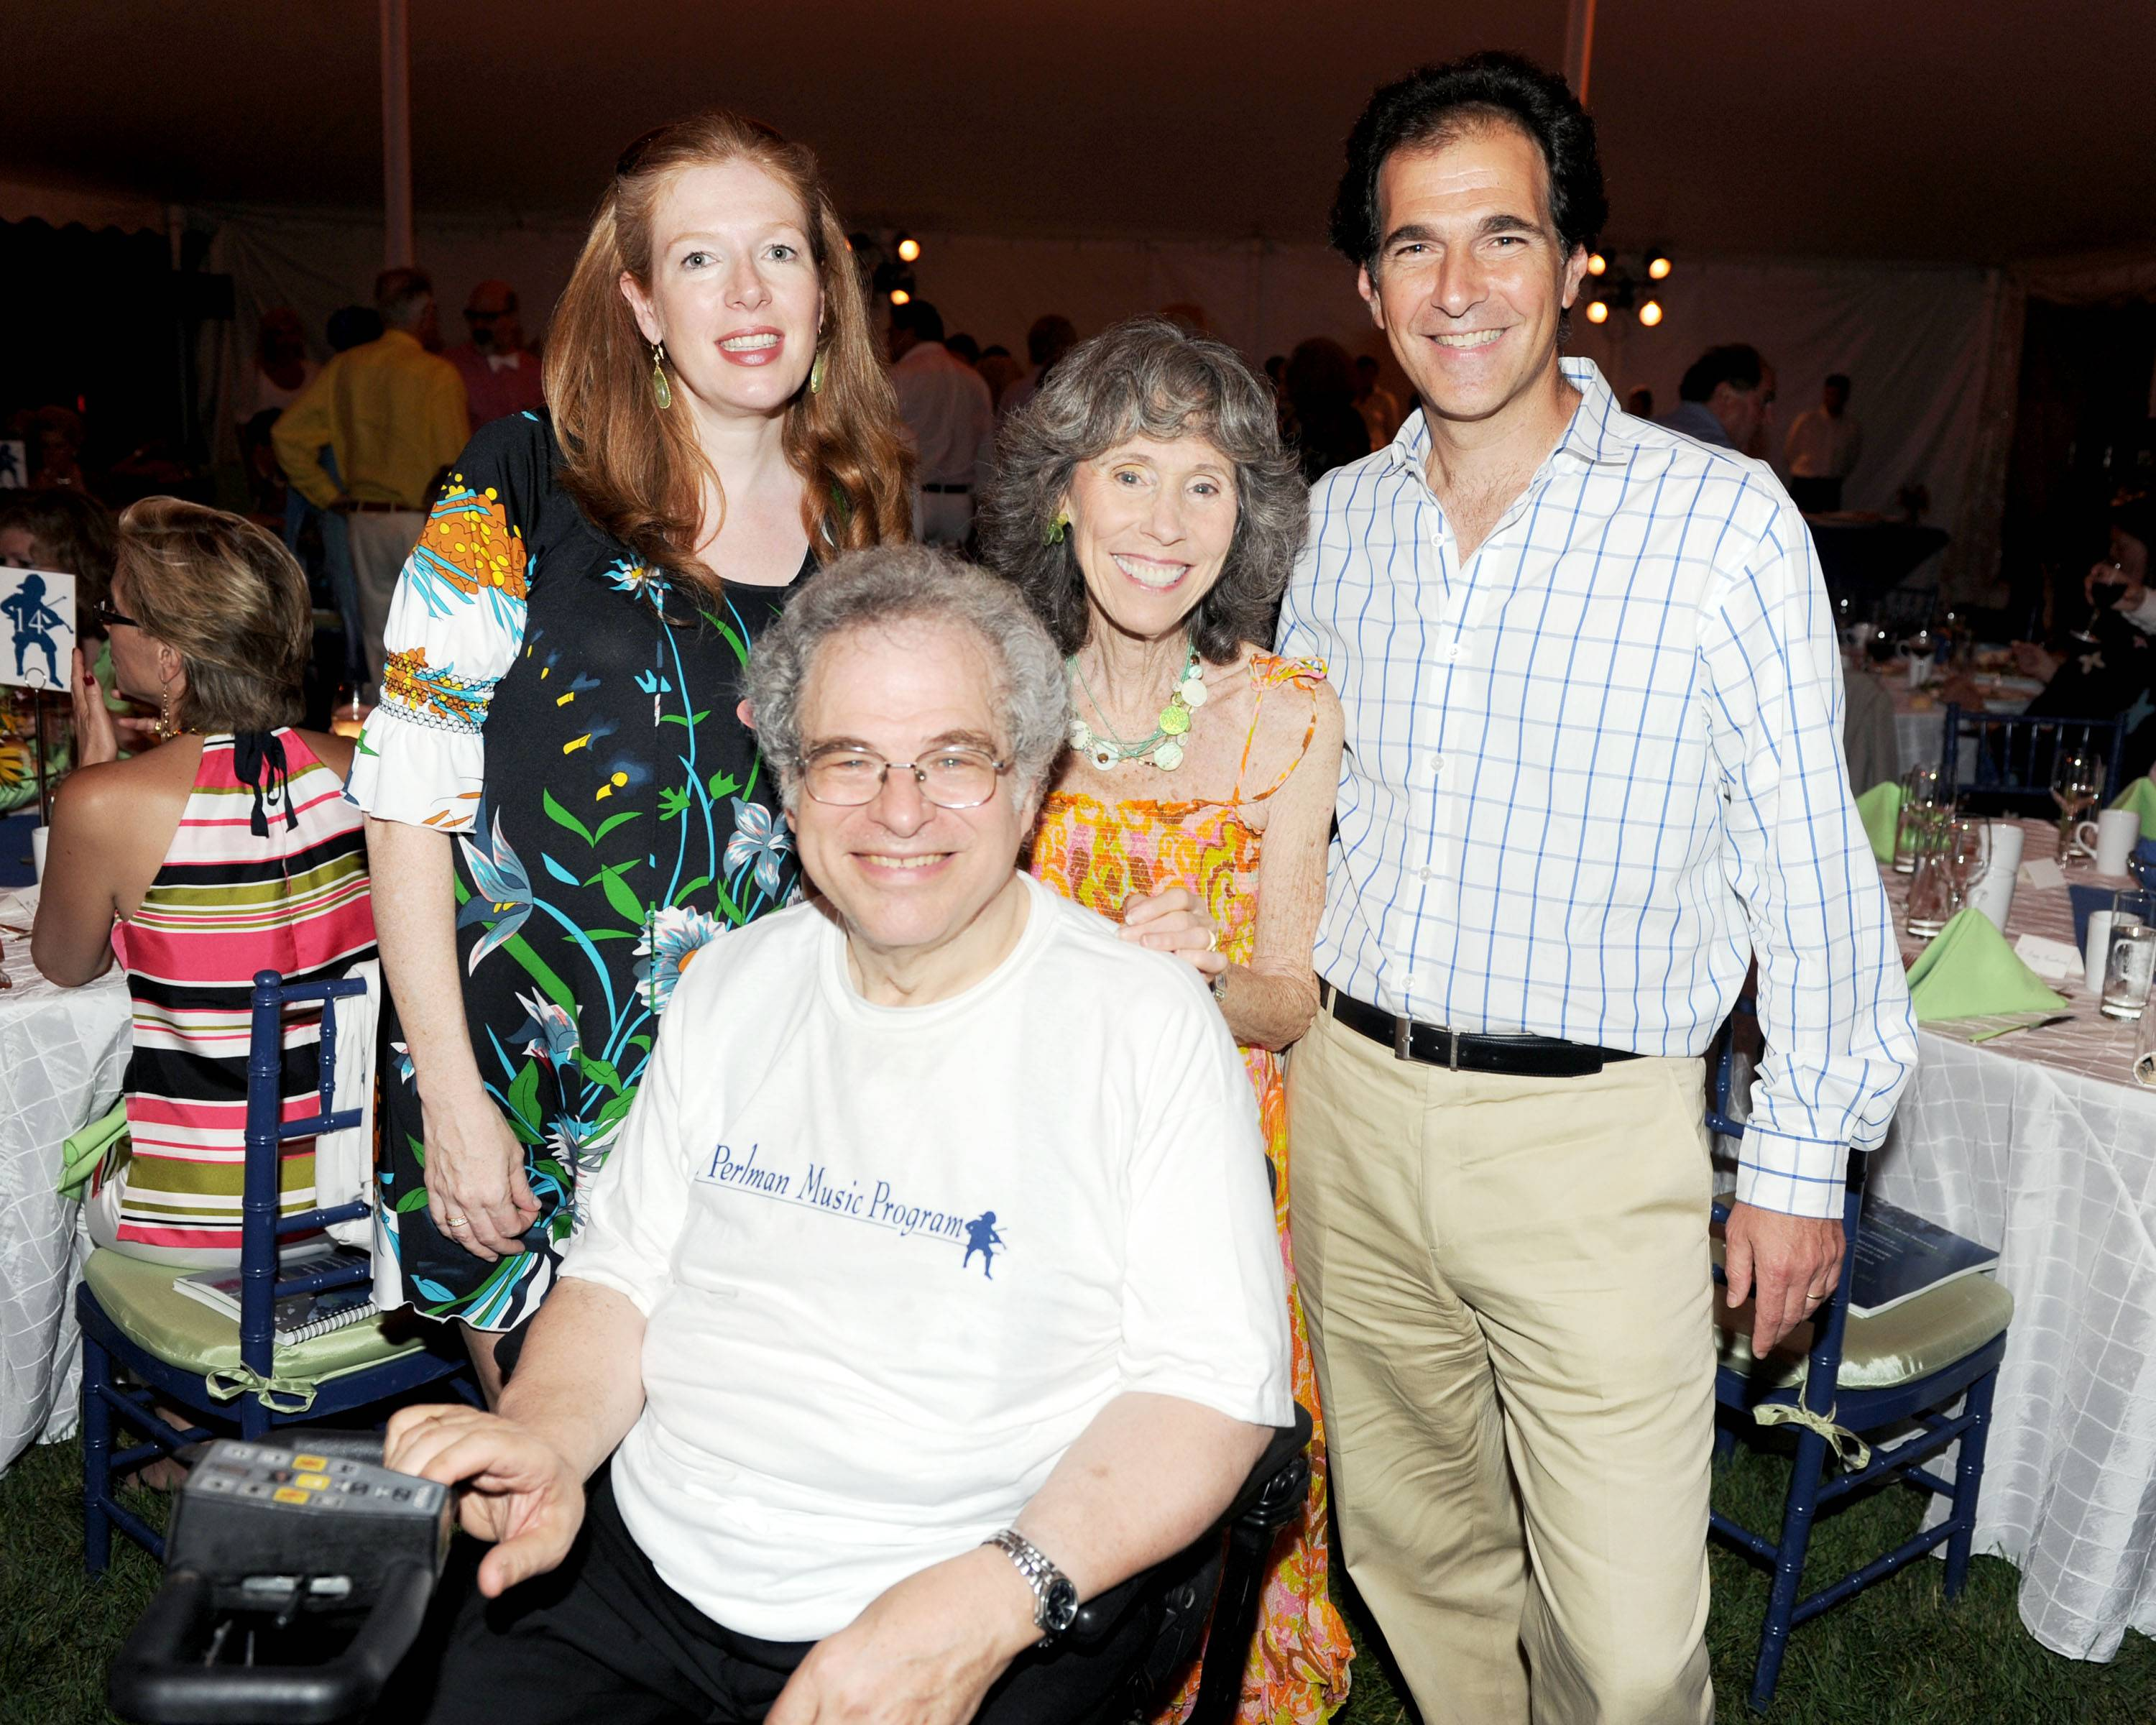 Ferrall_Hosts Dorian and Gary Fuhrman with Toby and Itzhak Perlman